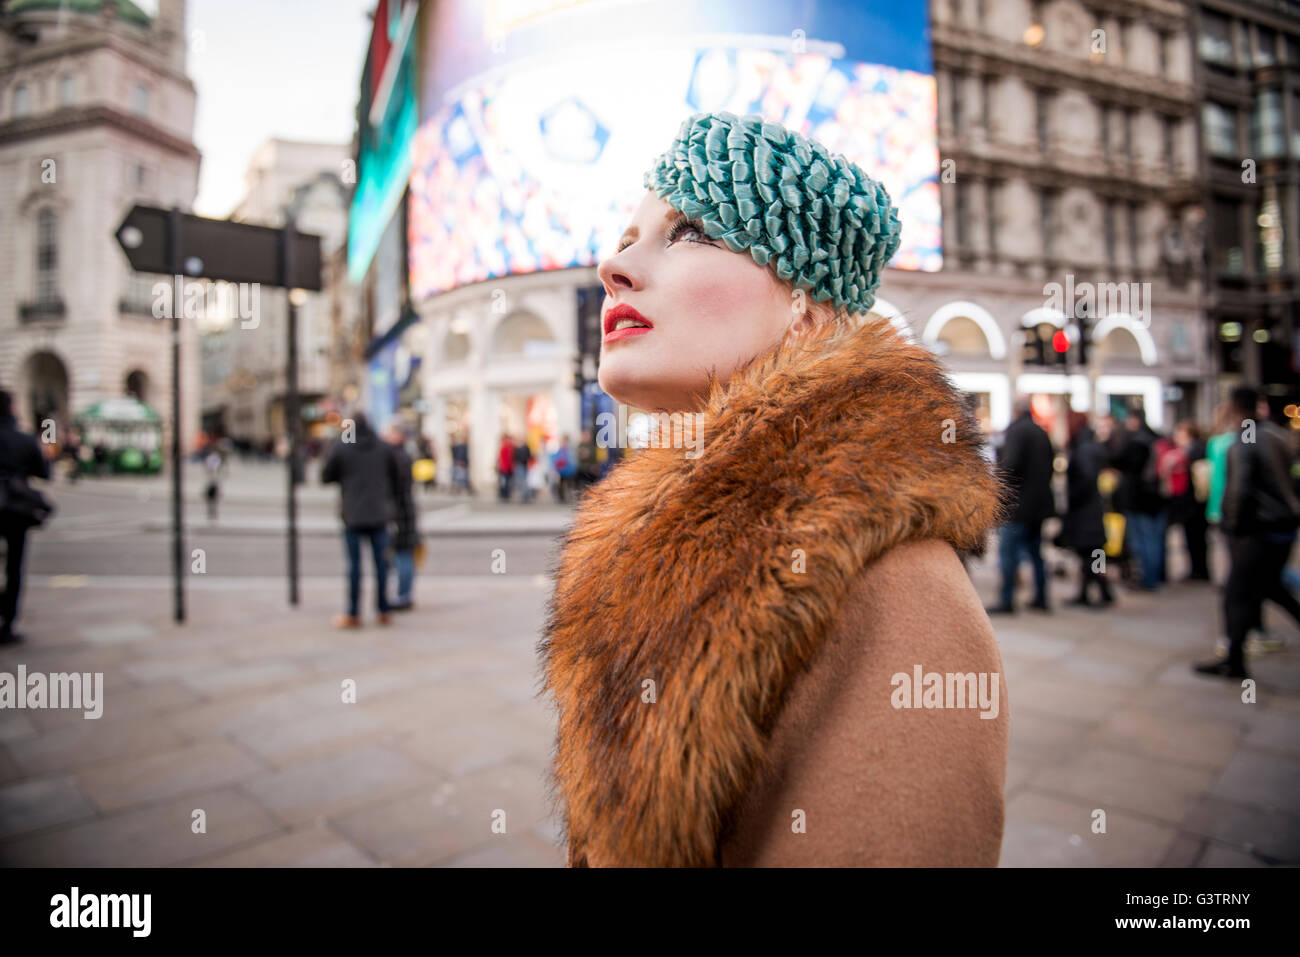 A stylish young woman dressed in 1930s style clothing walking about at Piccadilly Circus. Stock Photo